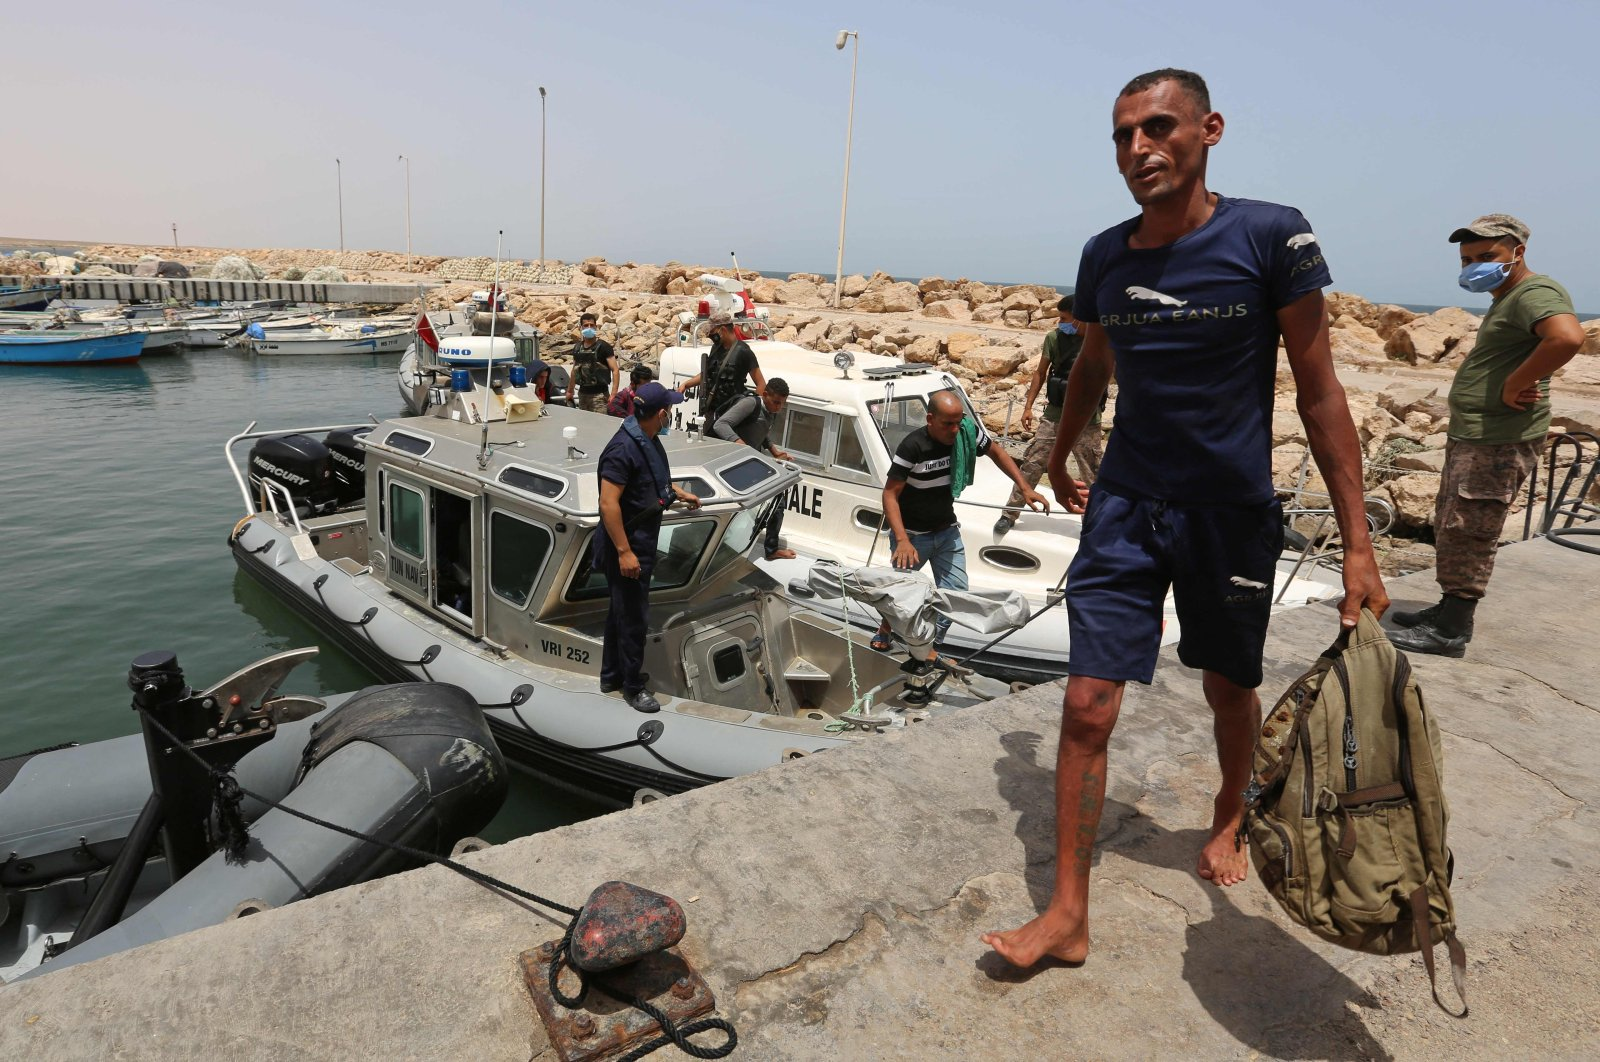 Migrants rescued by Tunisia's national guard during an attempted crossing of the Mediterranean by boat, arrive at the port of el-Ketef in Ben Guerdane in southern Tunisia near the border with Libya, June 27, 2021. (AFP Photo)